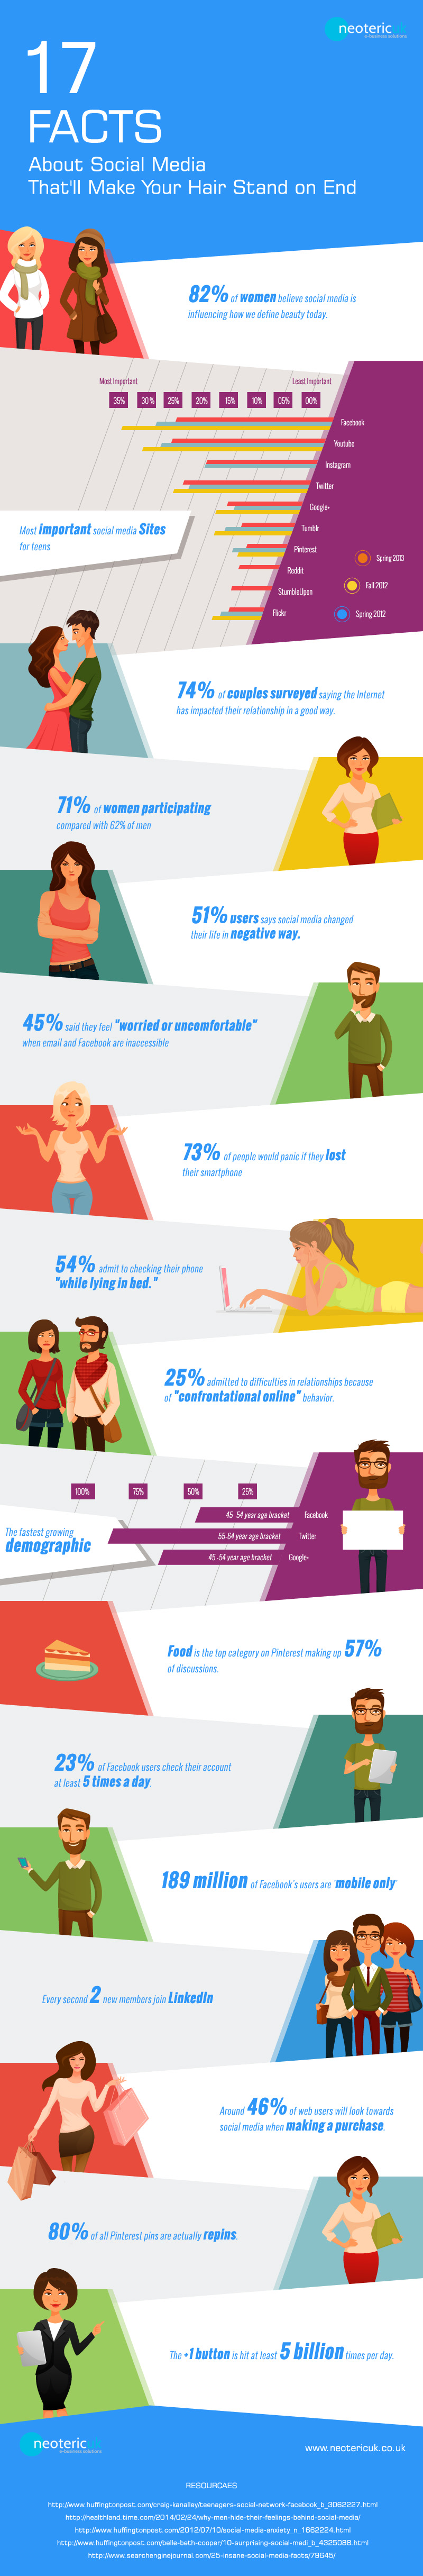 17-Facts-about-Social-Media-Thatll-Make-Your-Hair-Stand-on-End